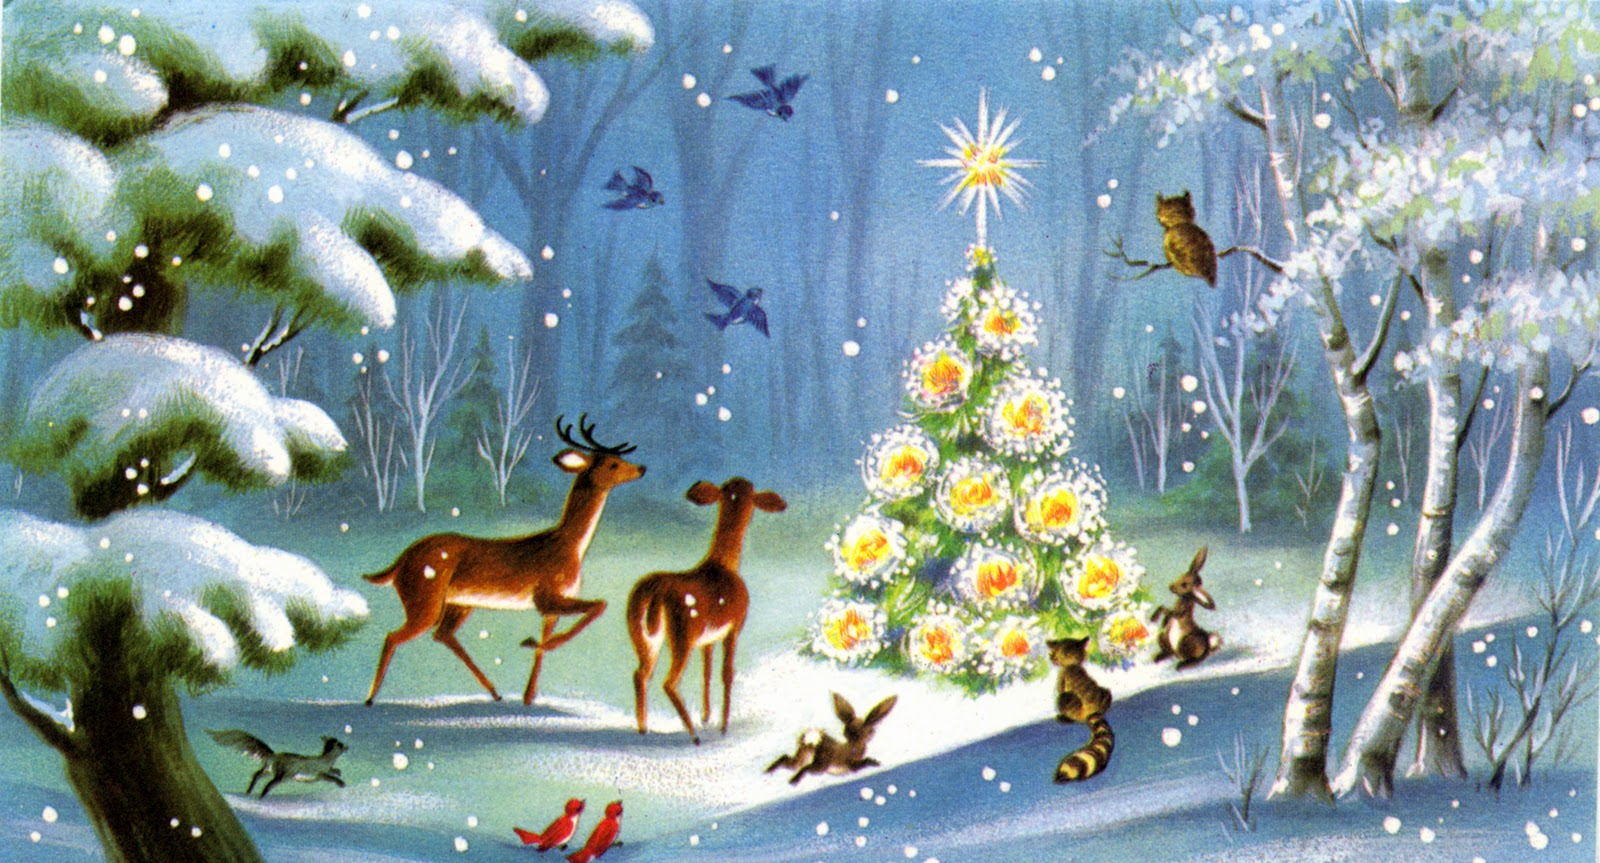 Vintage Animal Scene Christmas Cards wallpapers (1600 x 863 )